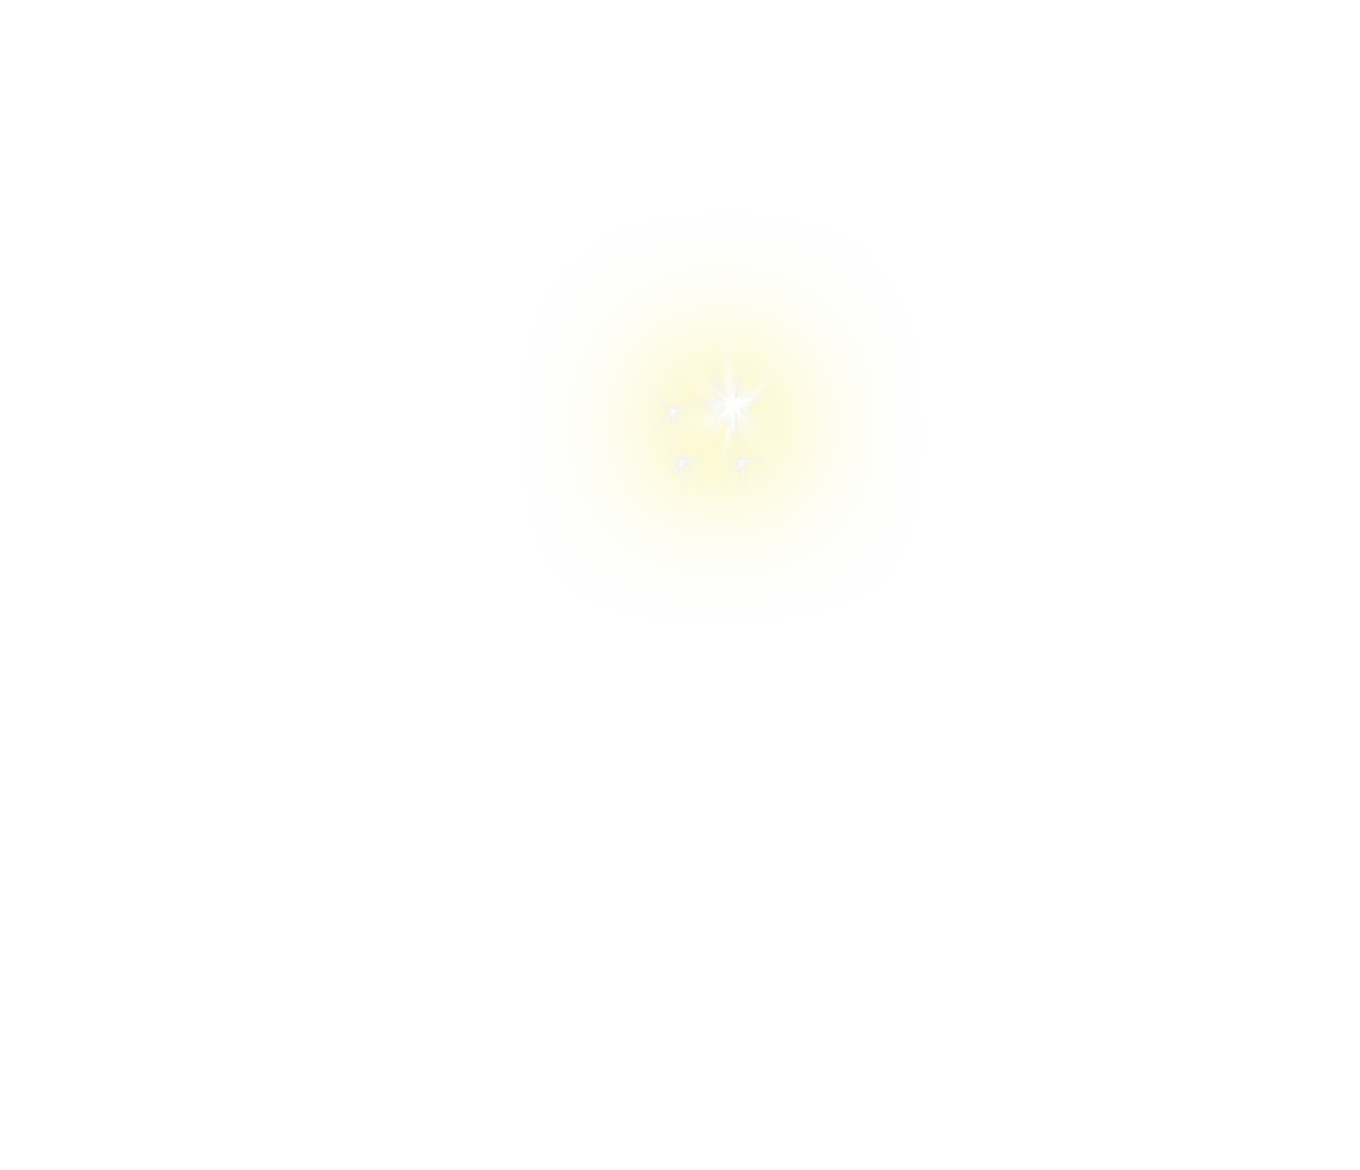 Yellow . Sparkle png graphic freeuse download